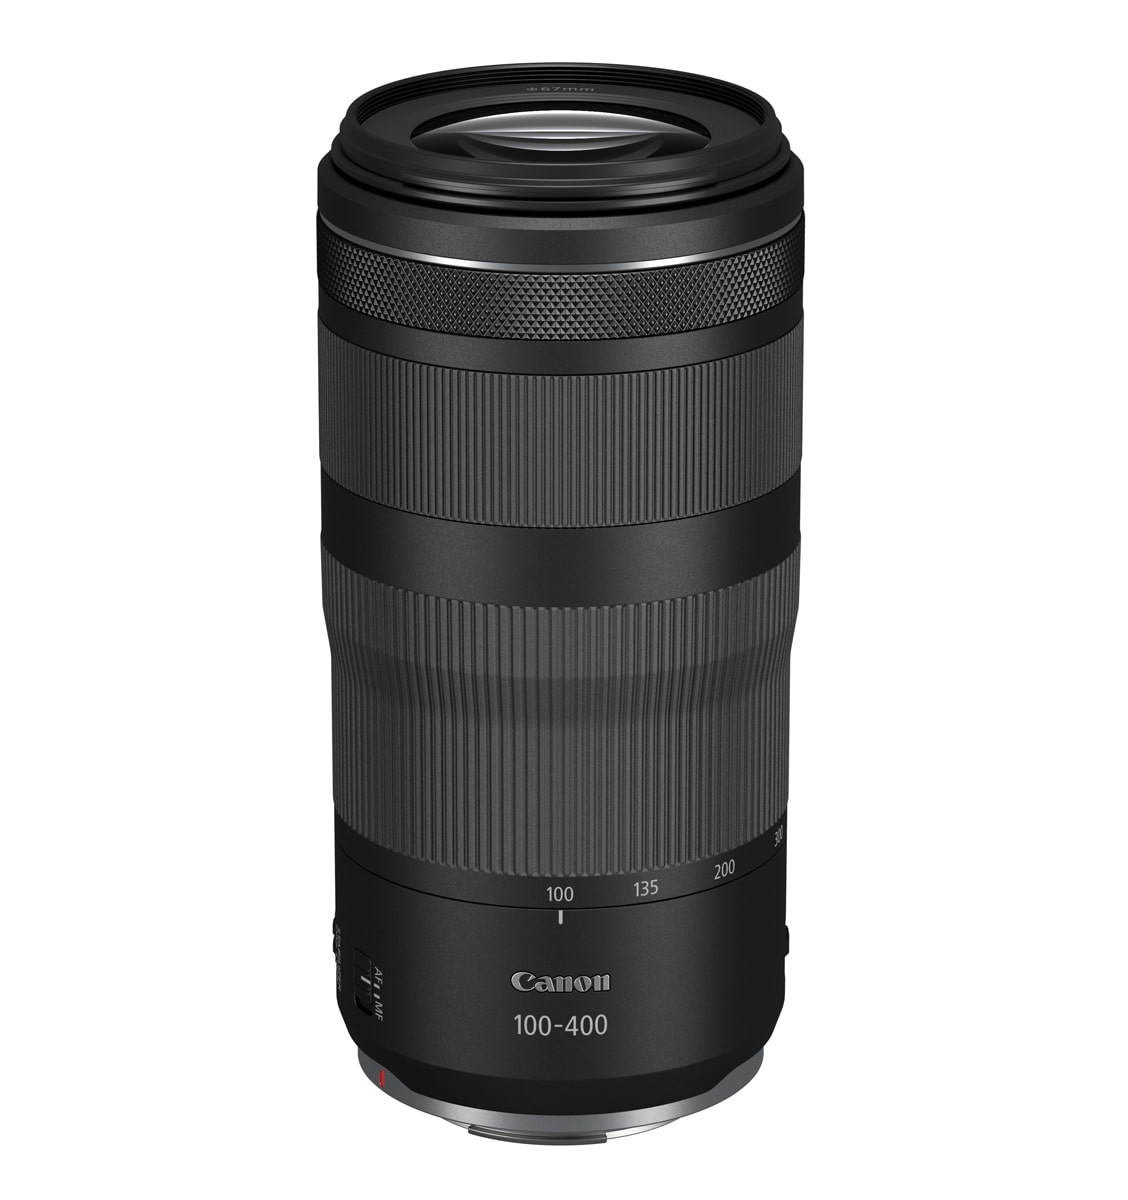 Canon RF 100-400mm 1:5.6-8 IS USM